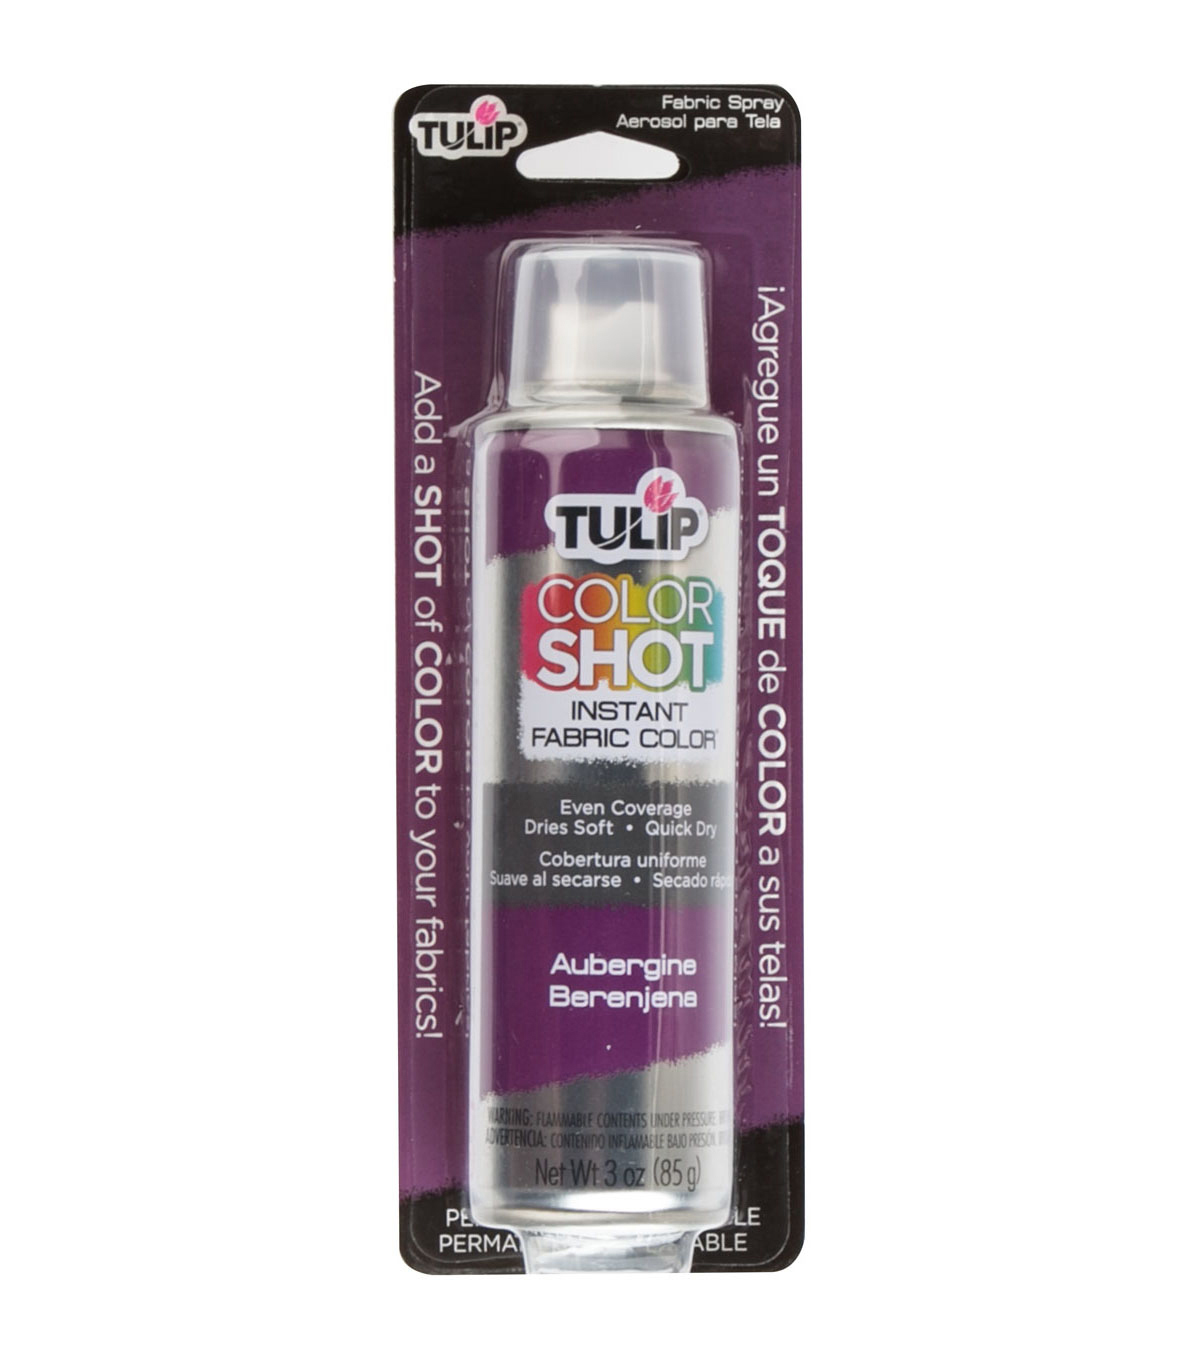 Tulip ColorShot Instant Fabric Color Spray 3oz, Aubergine